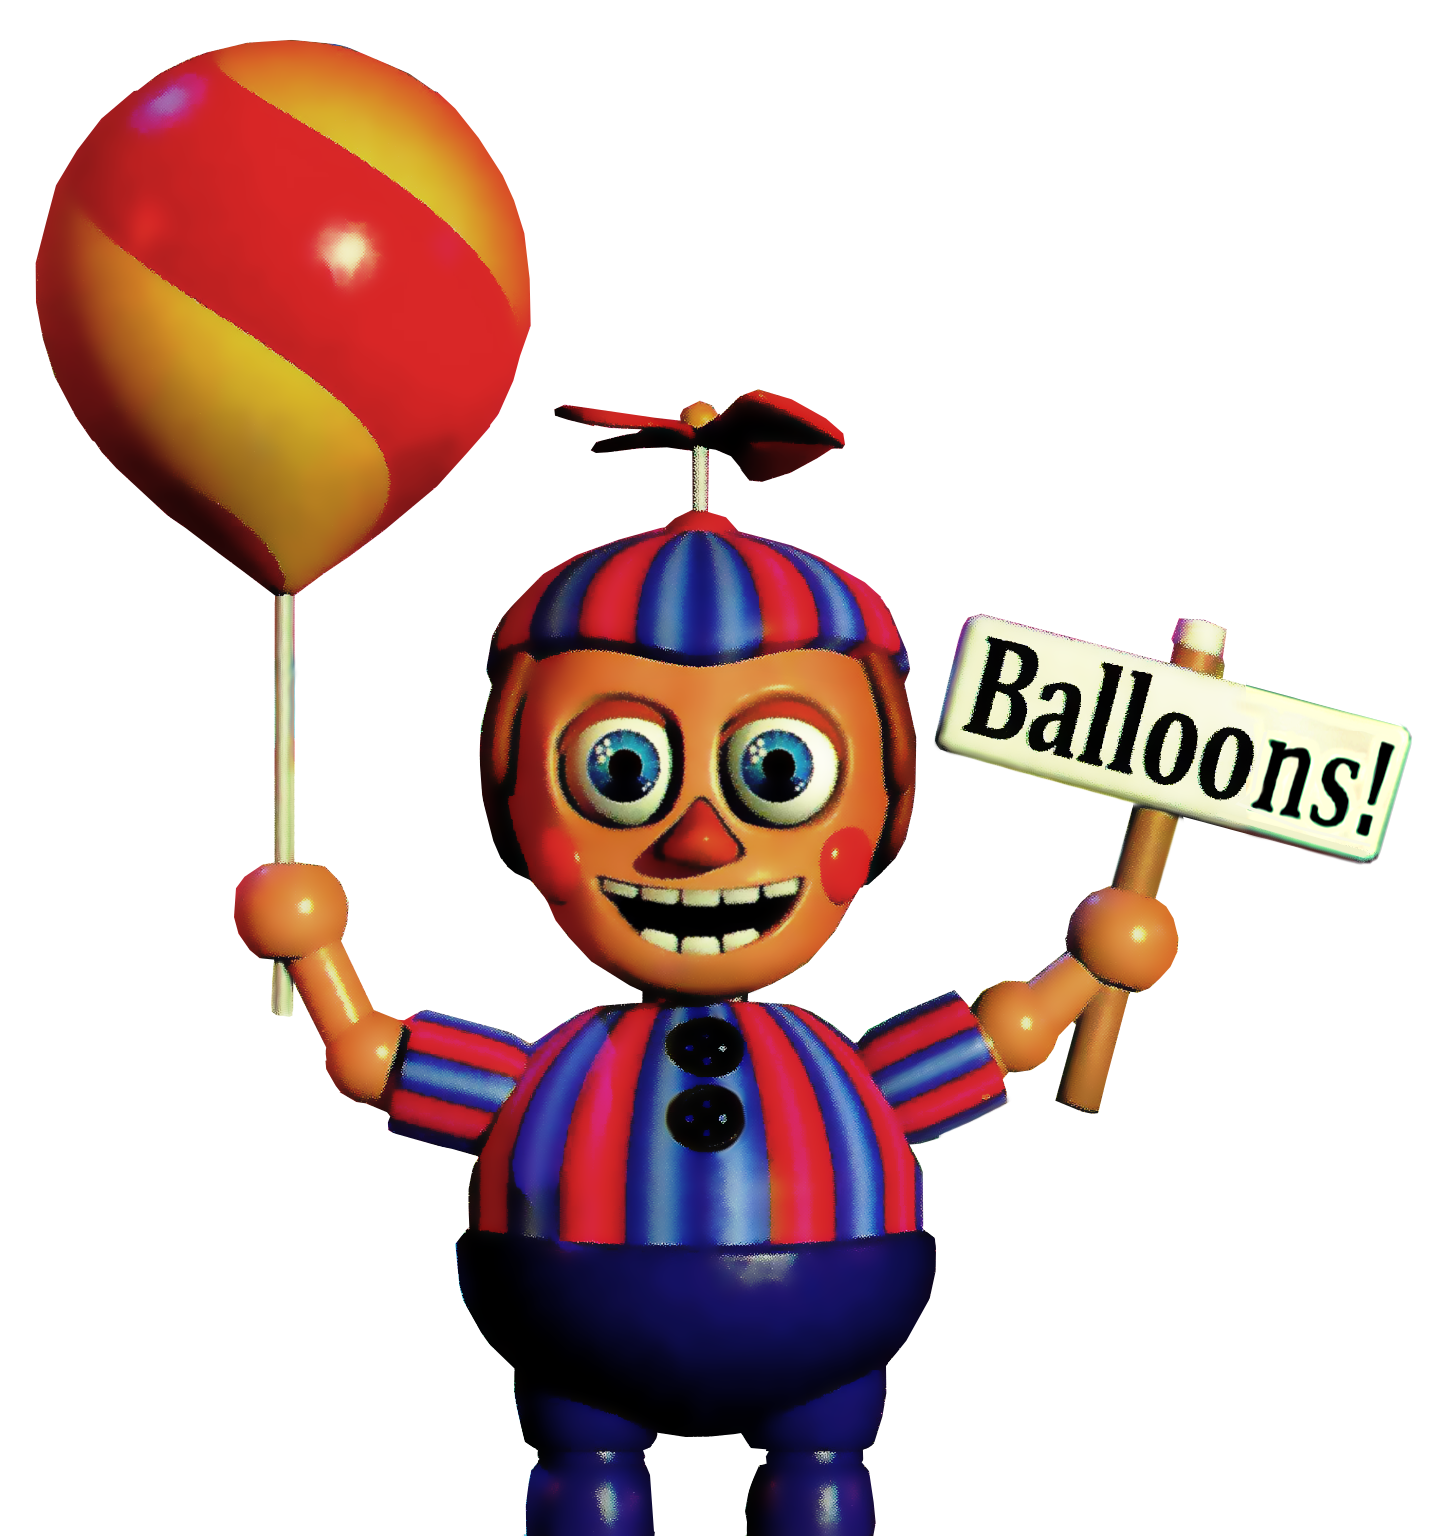 Balloon boy png. Decided to try and